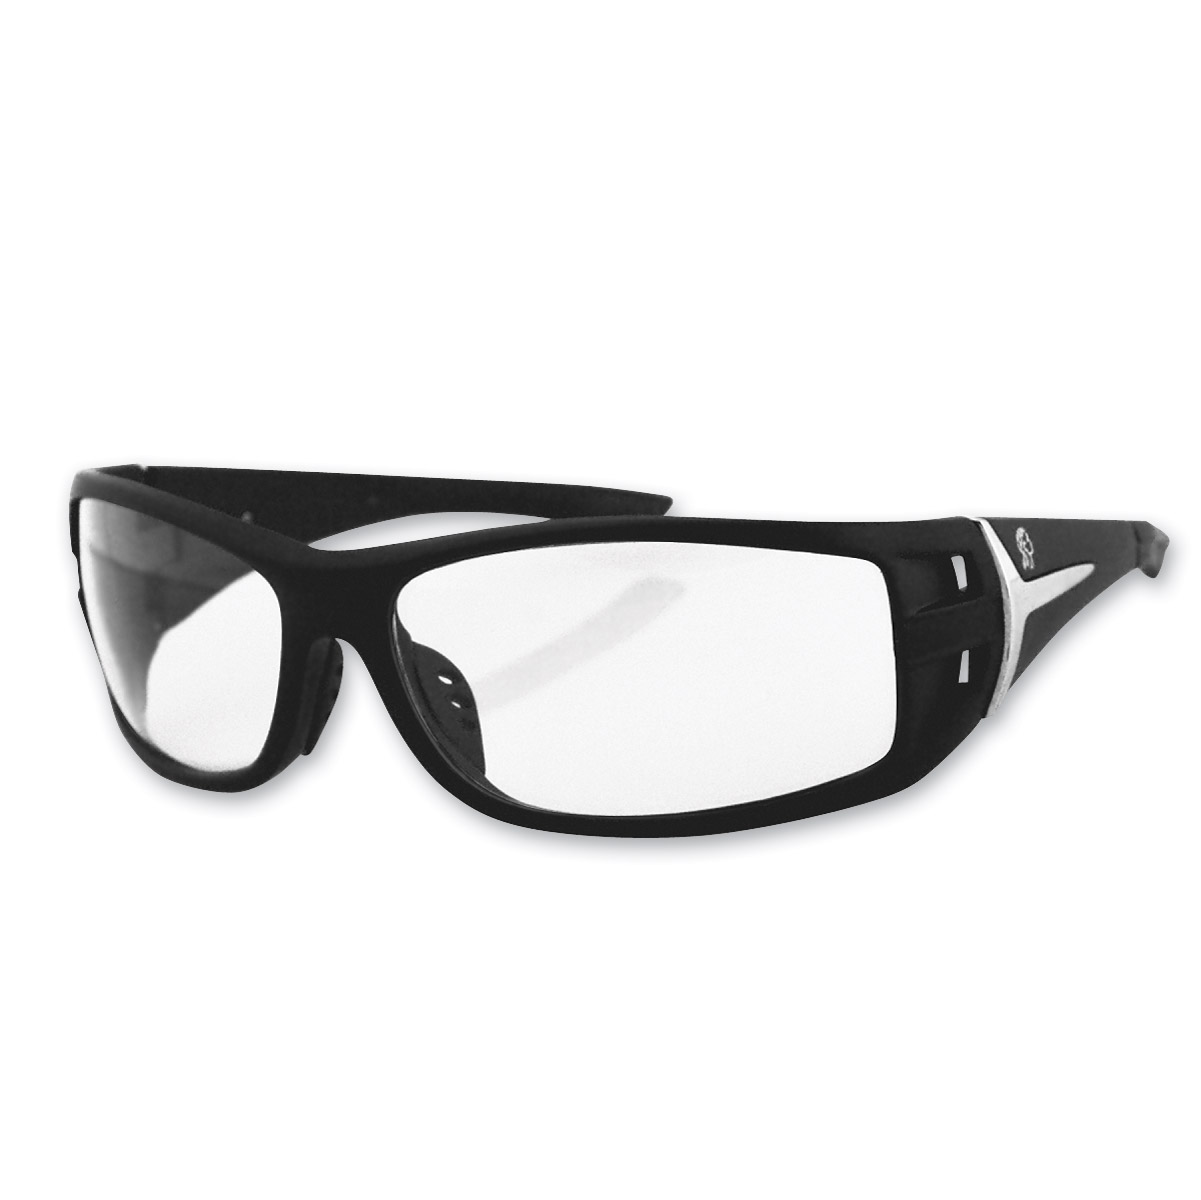 ZAN headgear Idaho Black Sunglasses with Clear Lenses